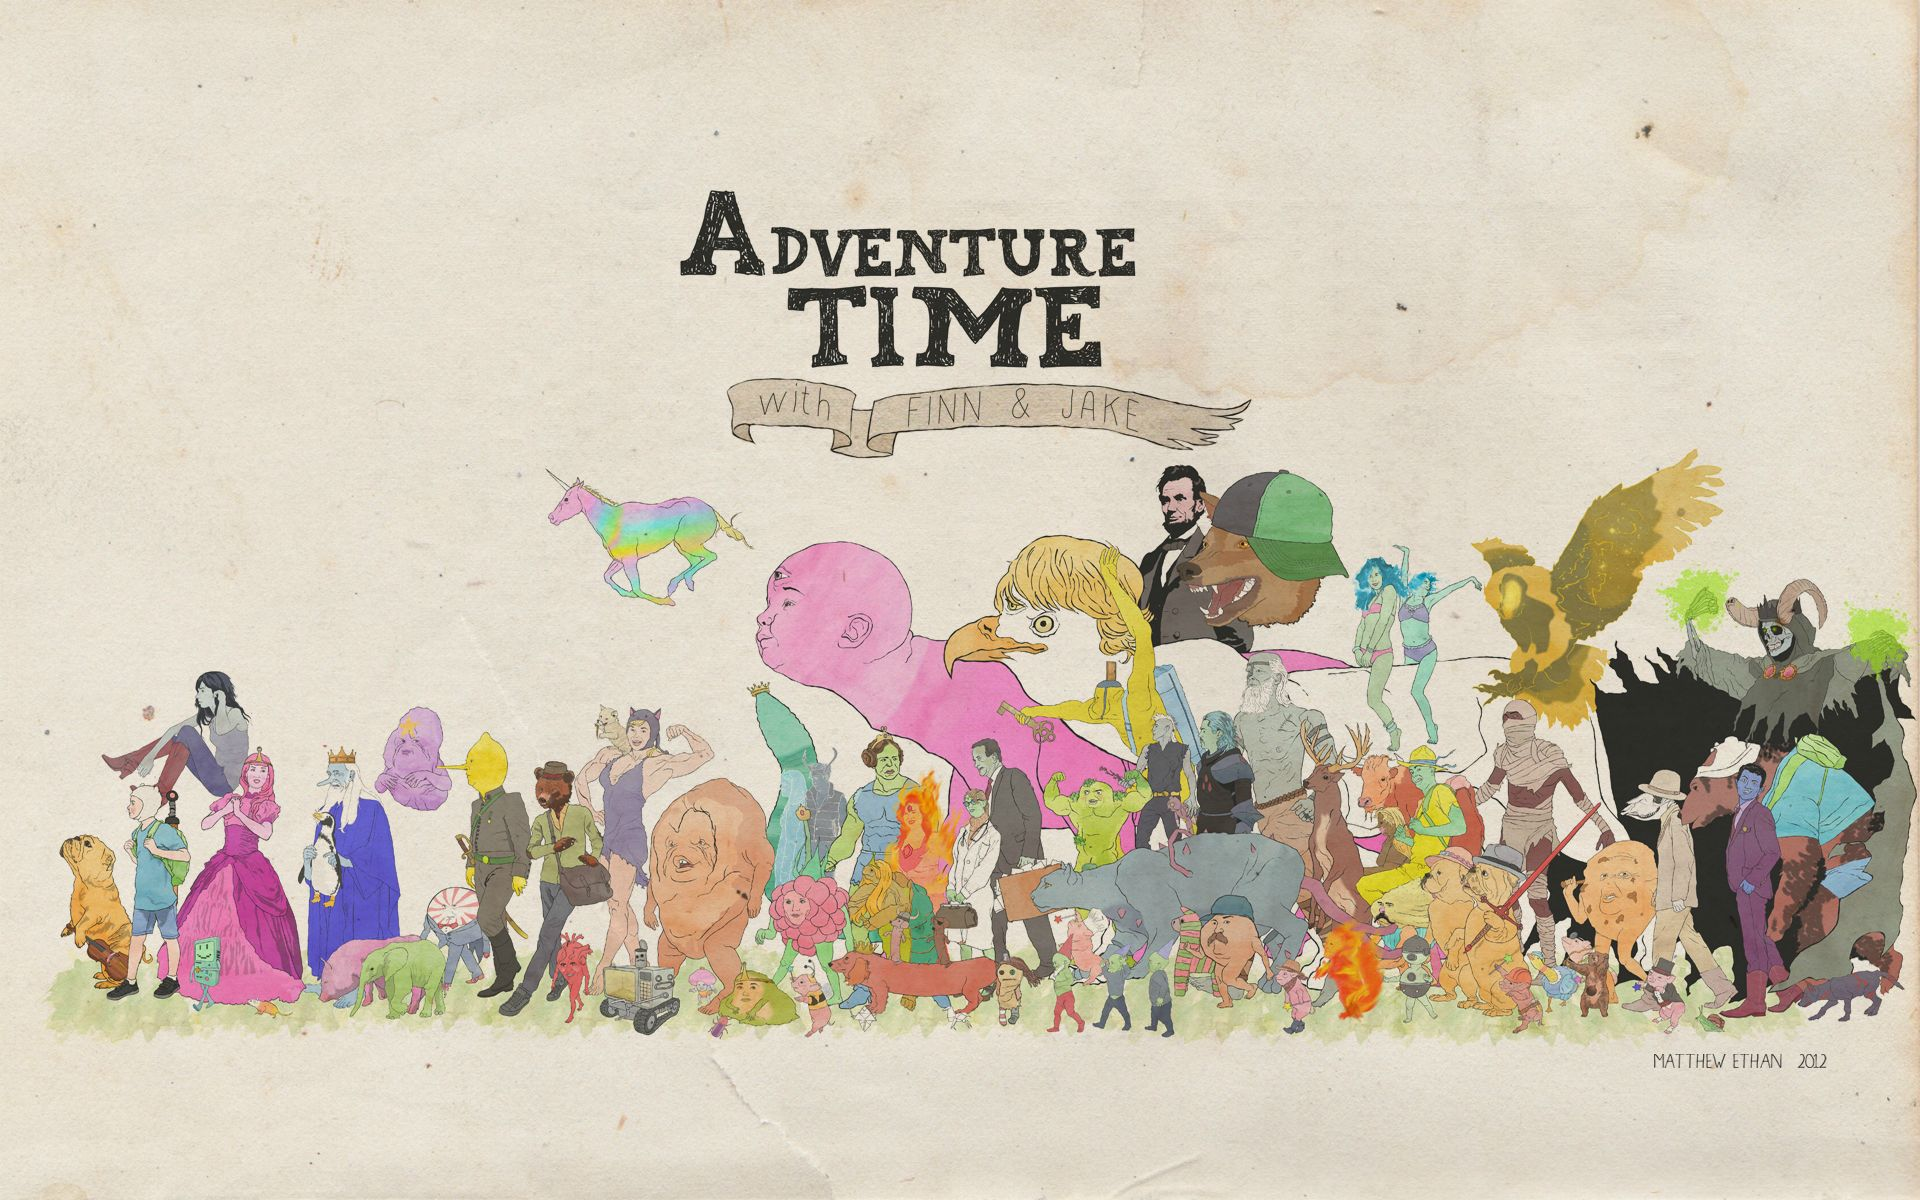 1920 x 1200 - 373k - jpg 3401 Adventure Time Wallpaper 1920X1200 ...